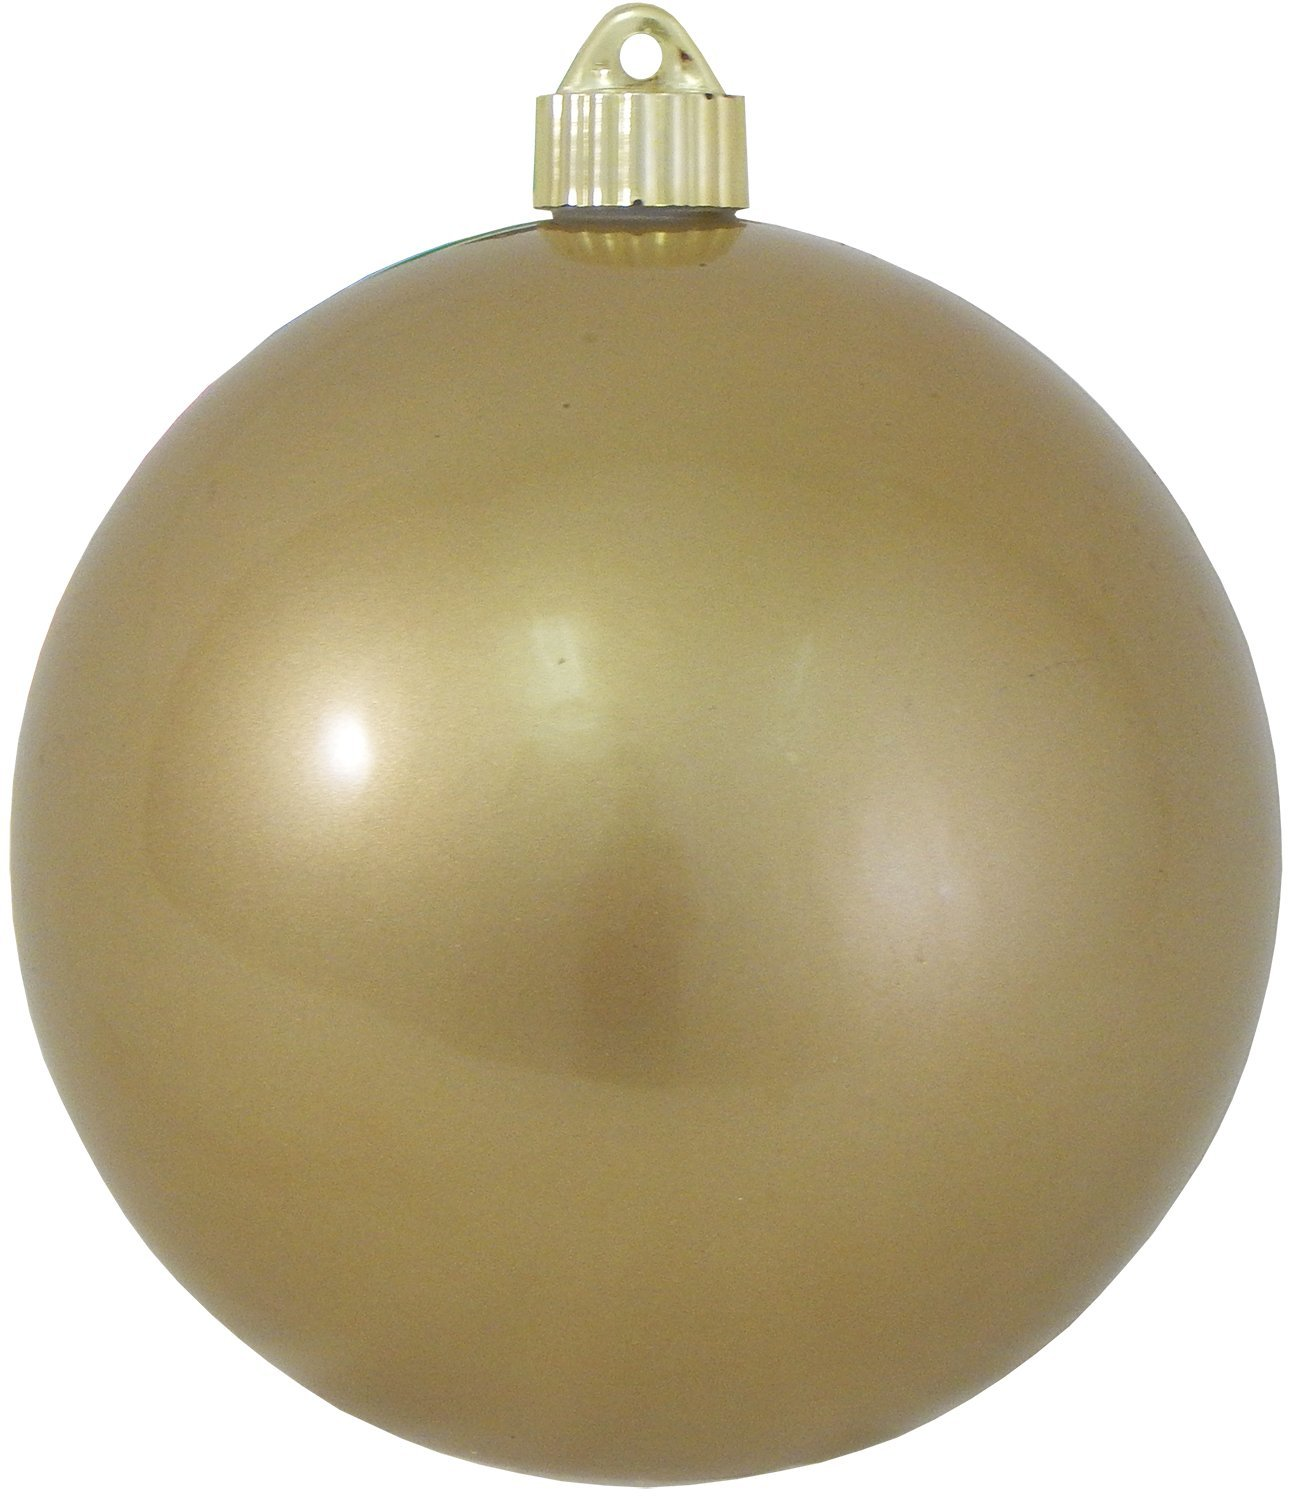 Christmas By Krebs CBK72960 Shatterproof UV-Resistant Christmas Ball Ornaments 6'' Candy Gold 12 Piece